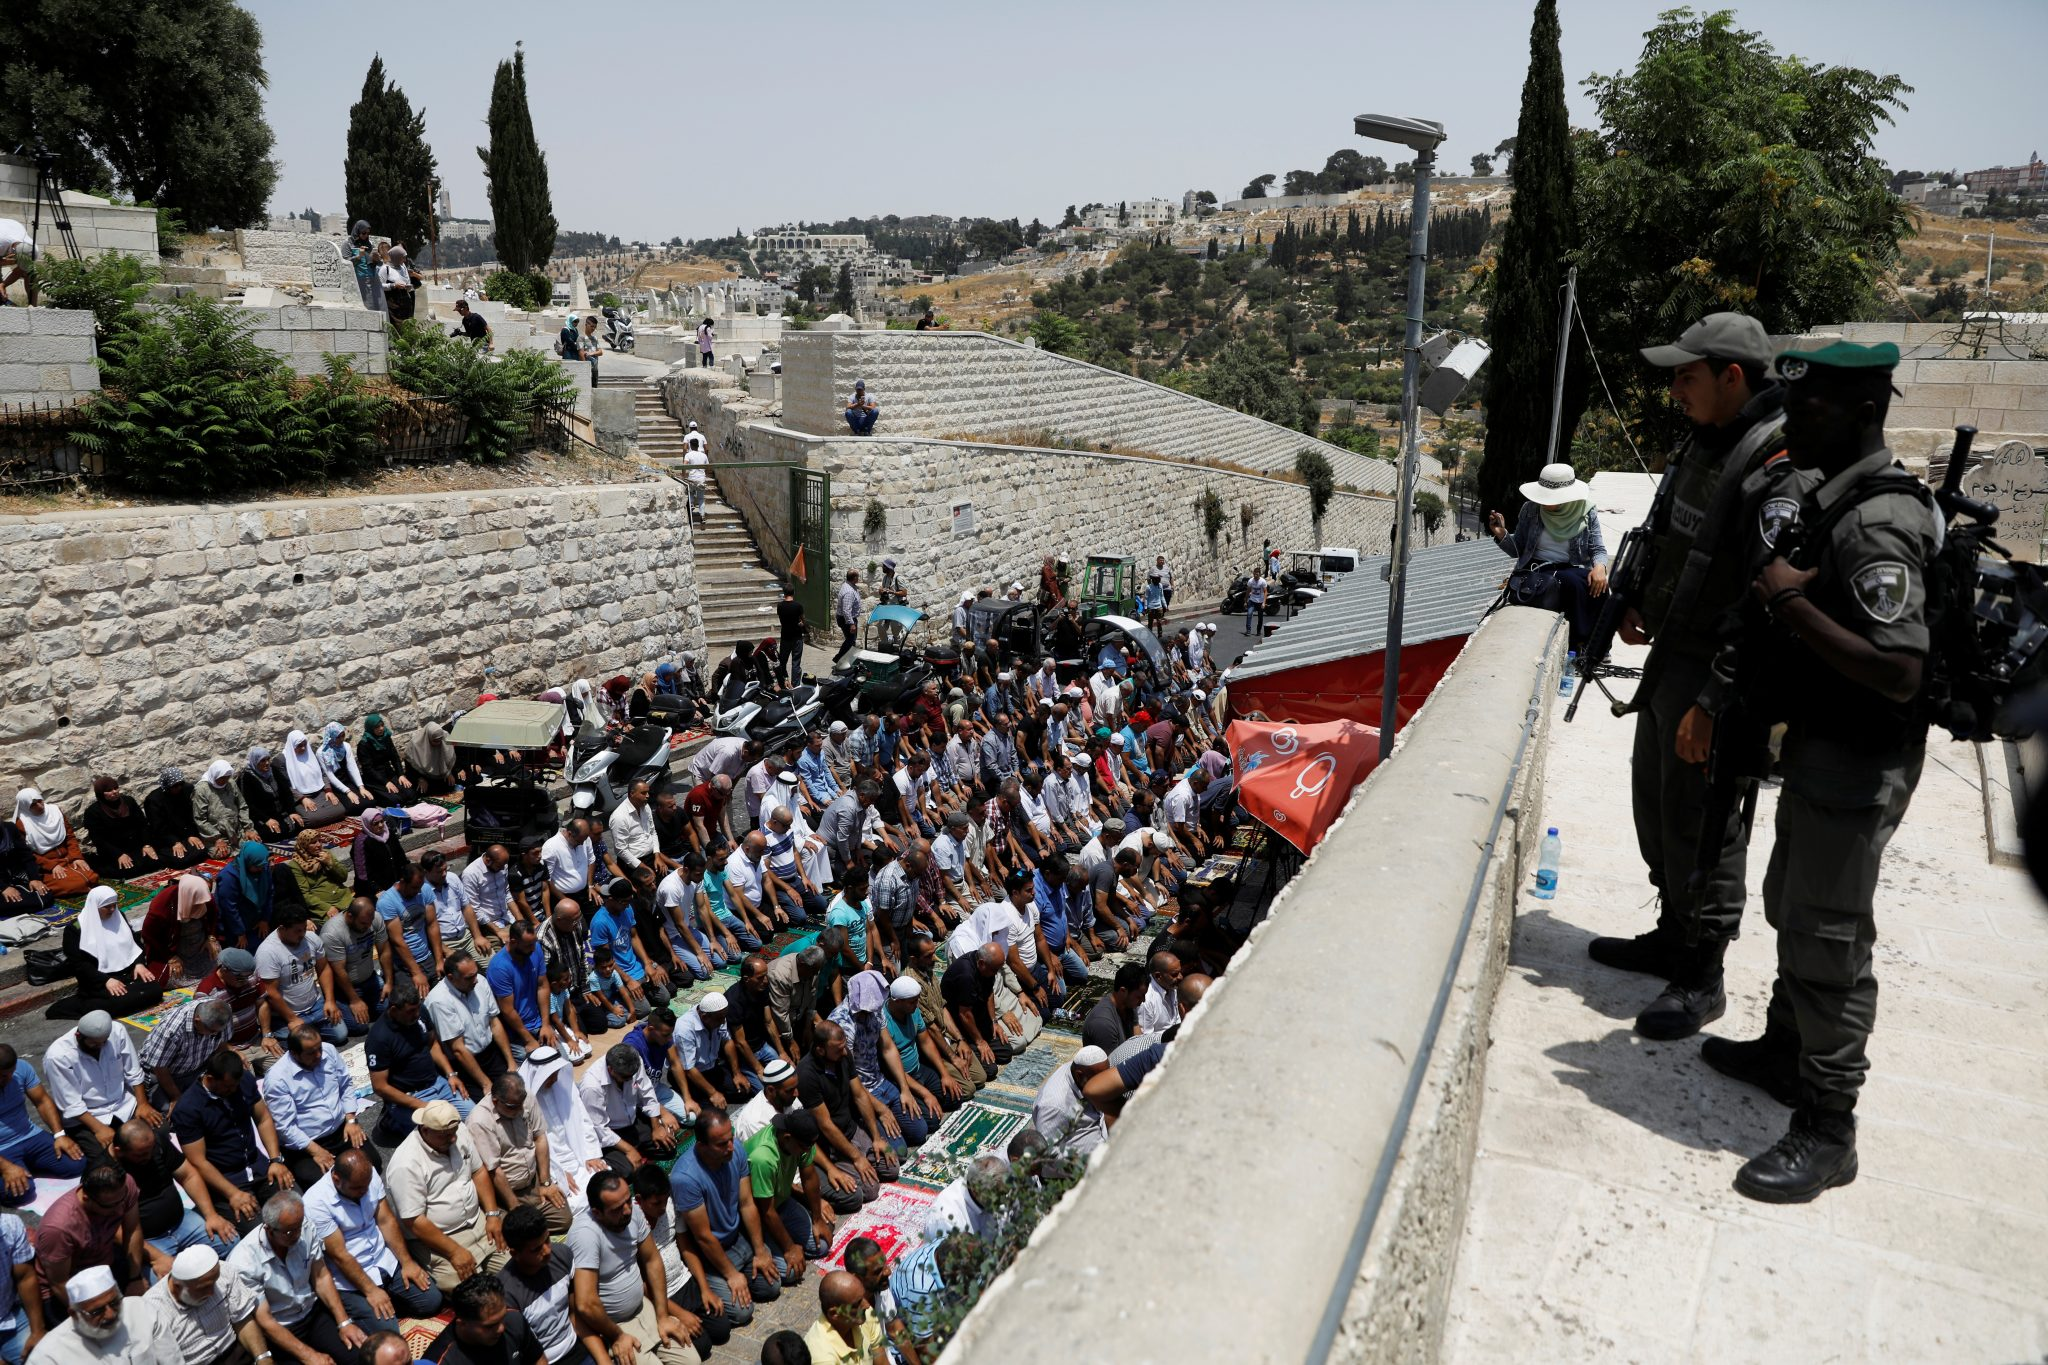 Israeli border police officers stand guard as Palestinians pray at Lions' Gate, the entrance to Jerusalem's Old City, in protest over Israel's new security measures at the compound housing al-Aqsa mosque | REUTERS